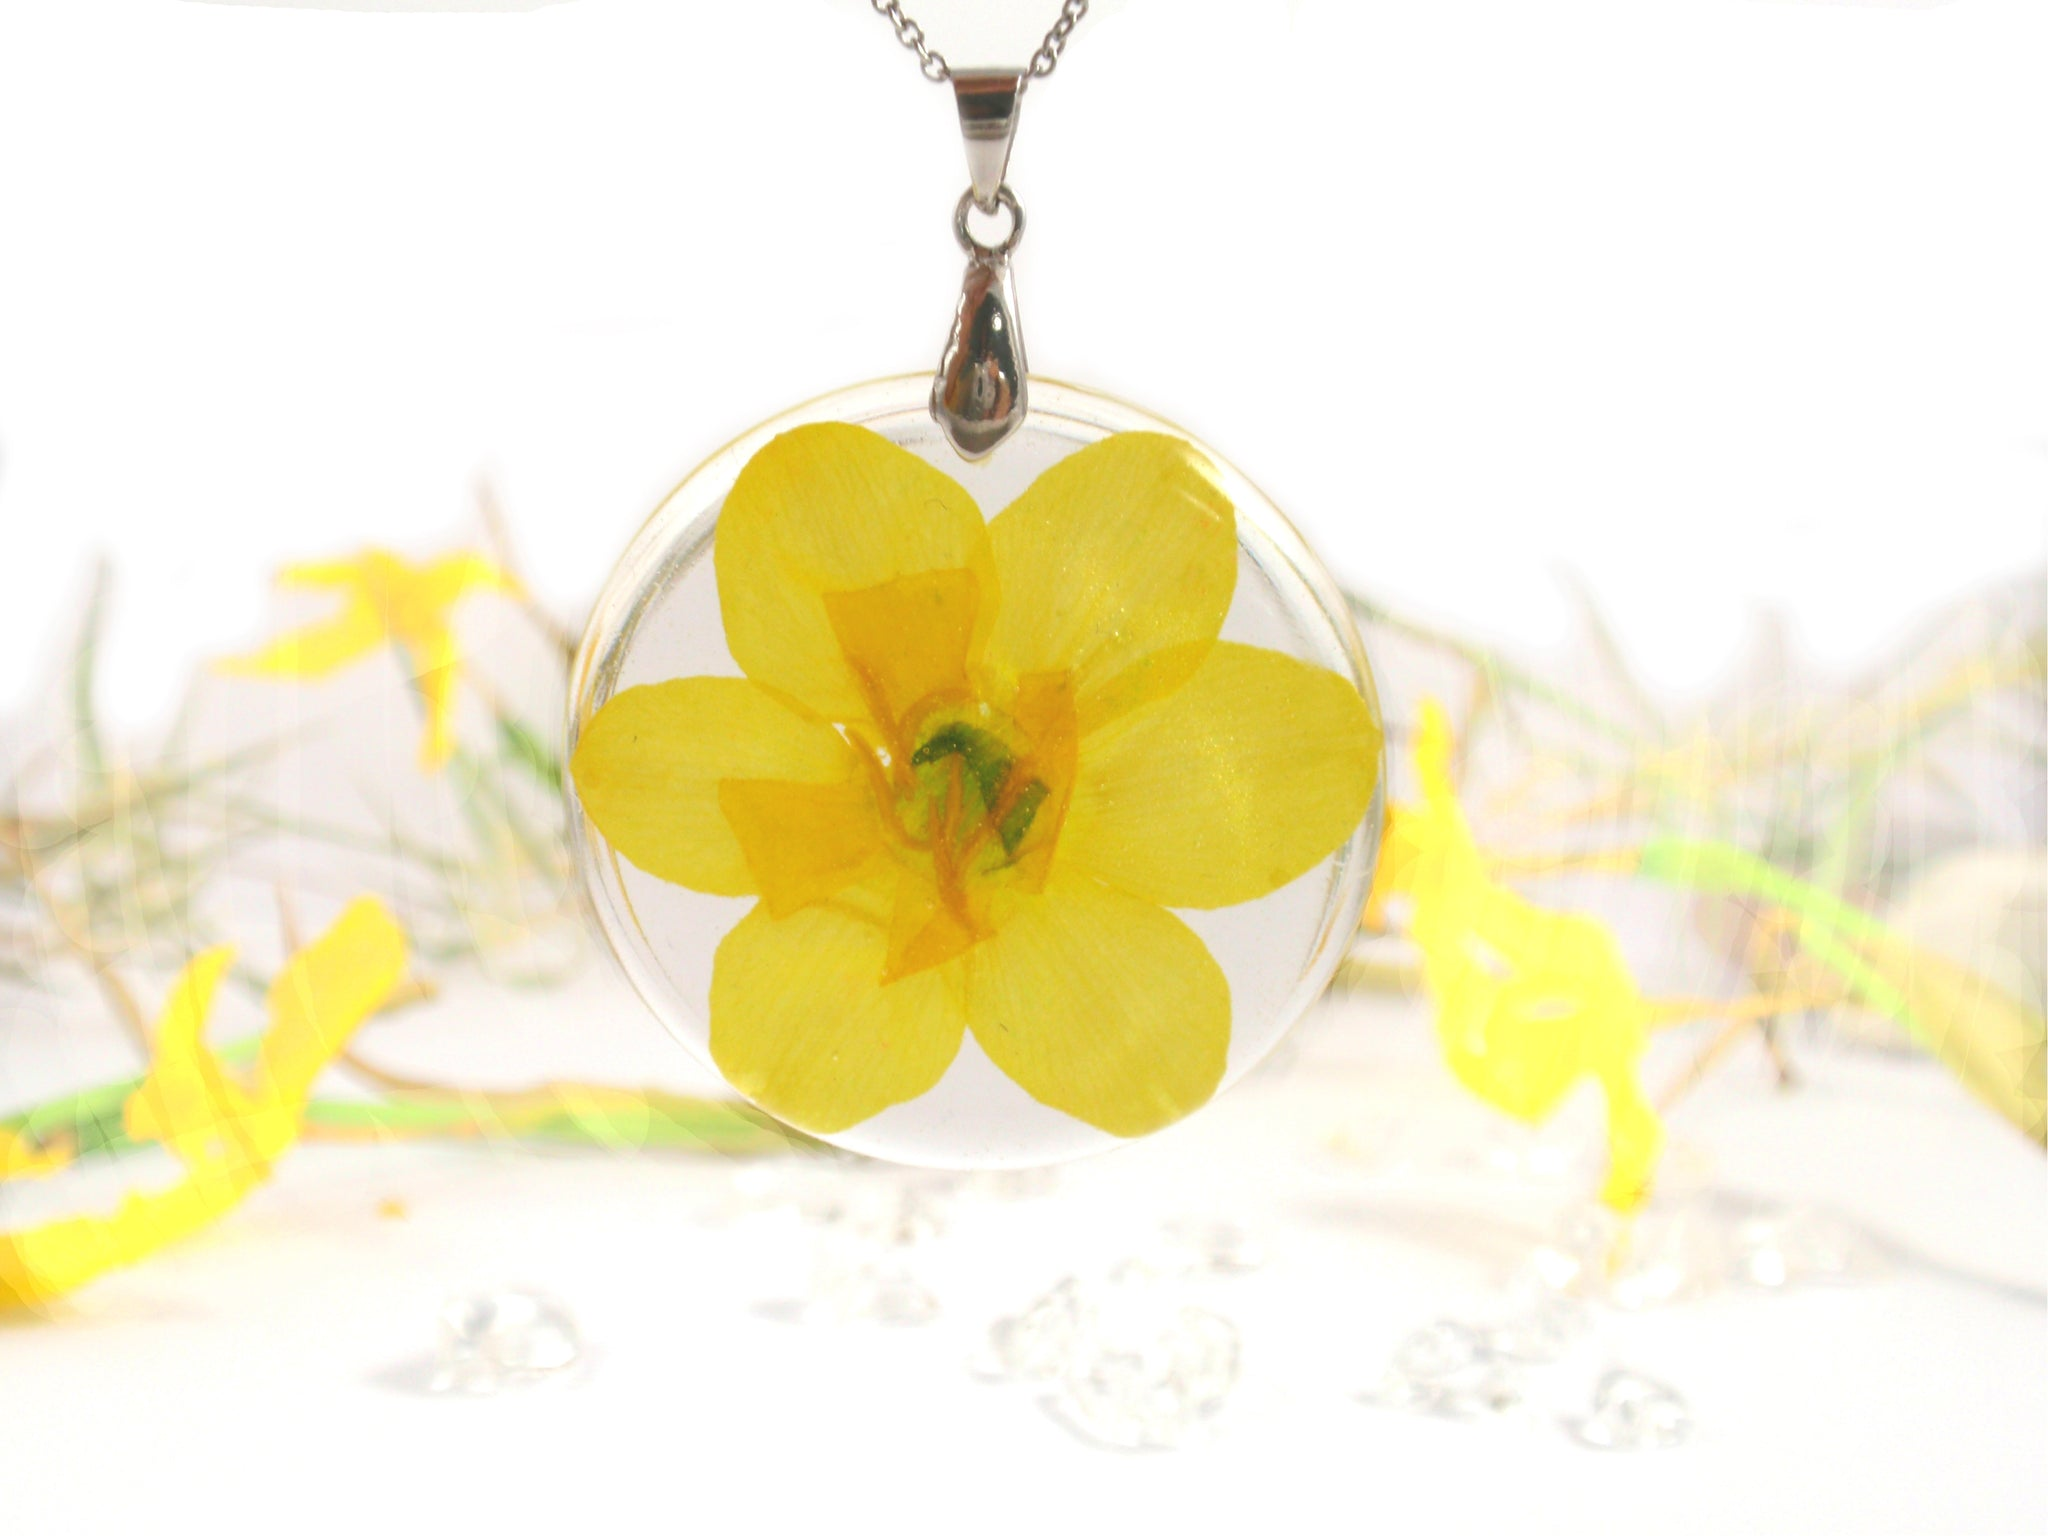 Daffodil flower Neckllace, Birth month flower March